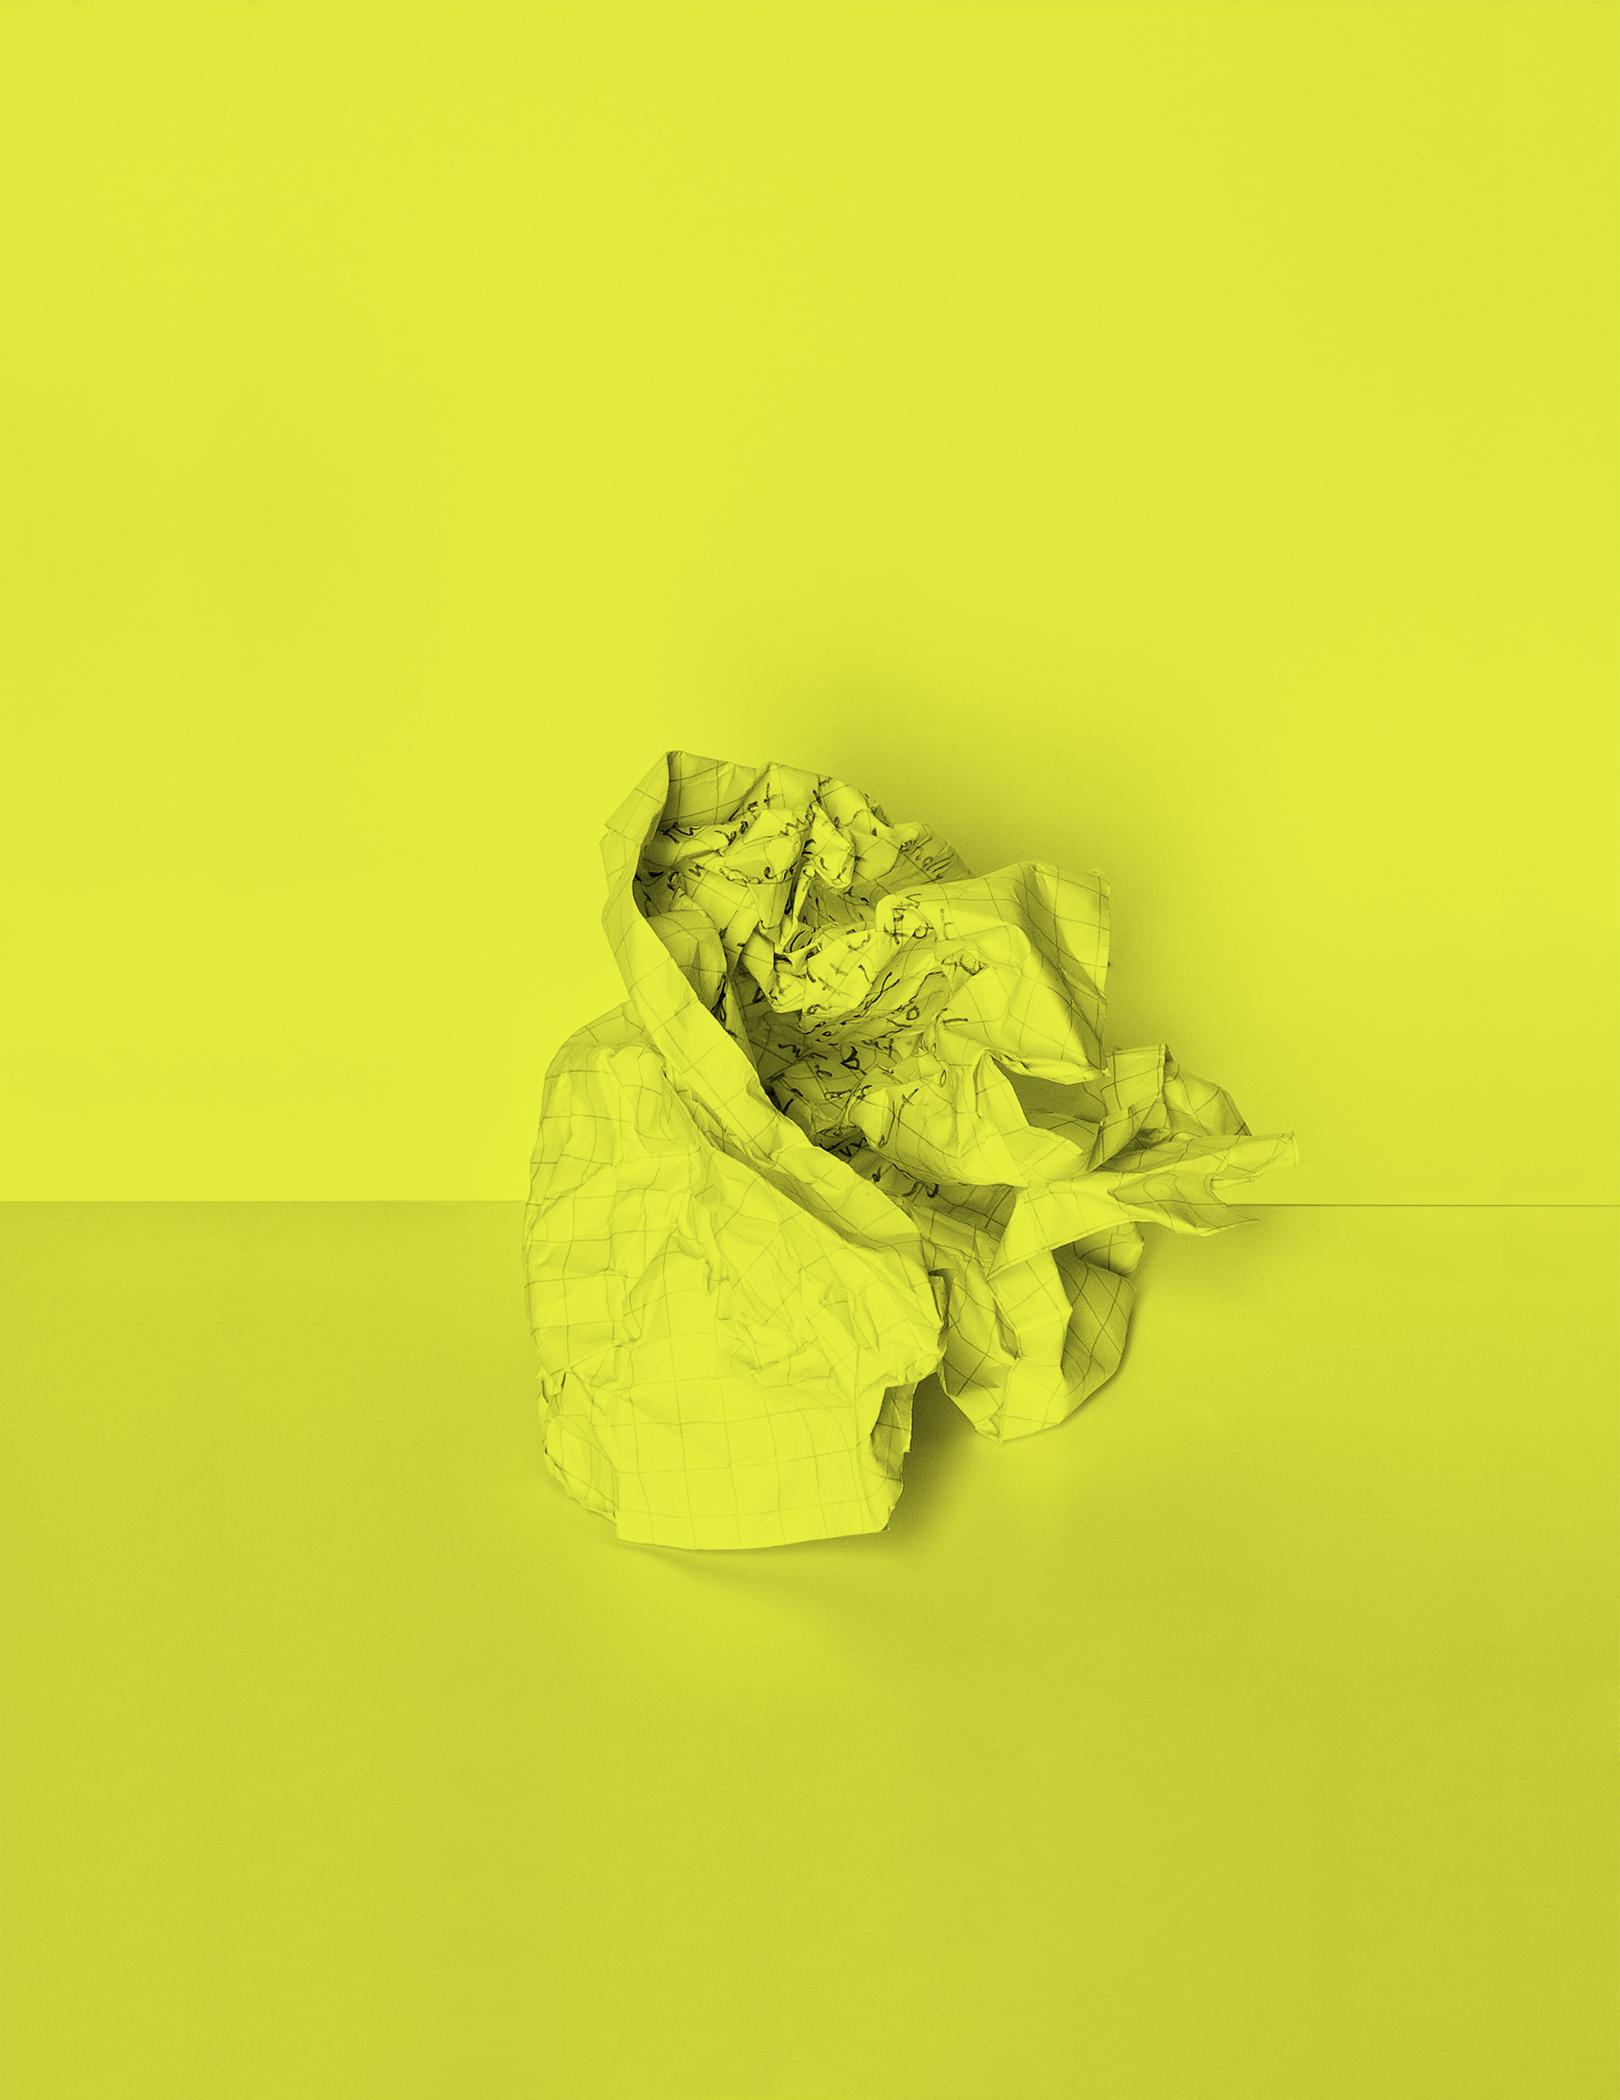 A lime green wall serves as a backdrop for a lime green ball of crumbled graph paper. The paper has words scribbled on it, which are indistinguishable due to how heavily it has been crumbled.